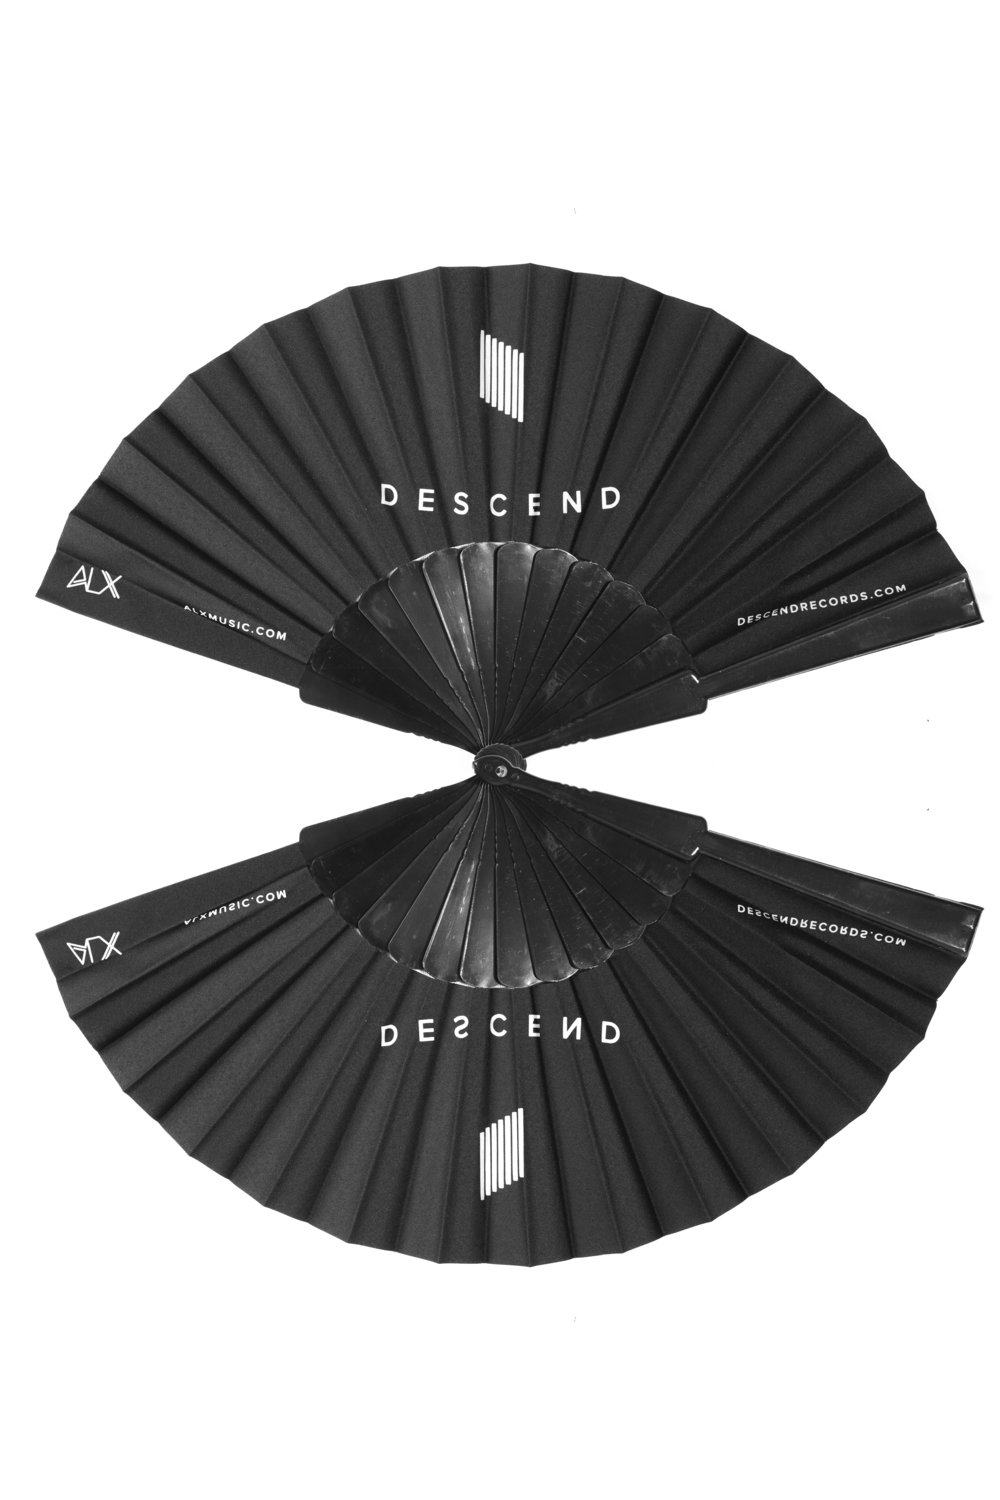 Descend Fan